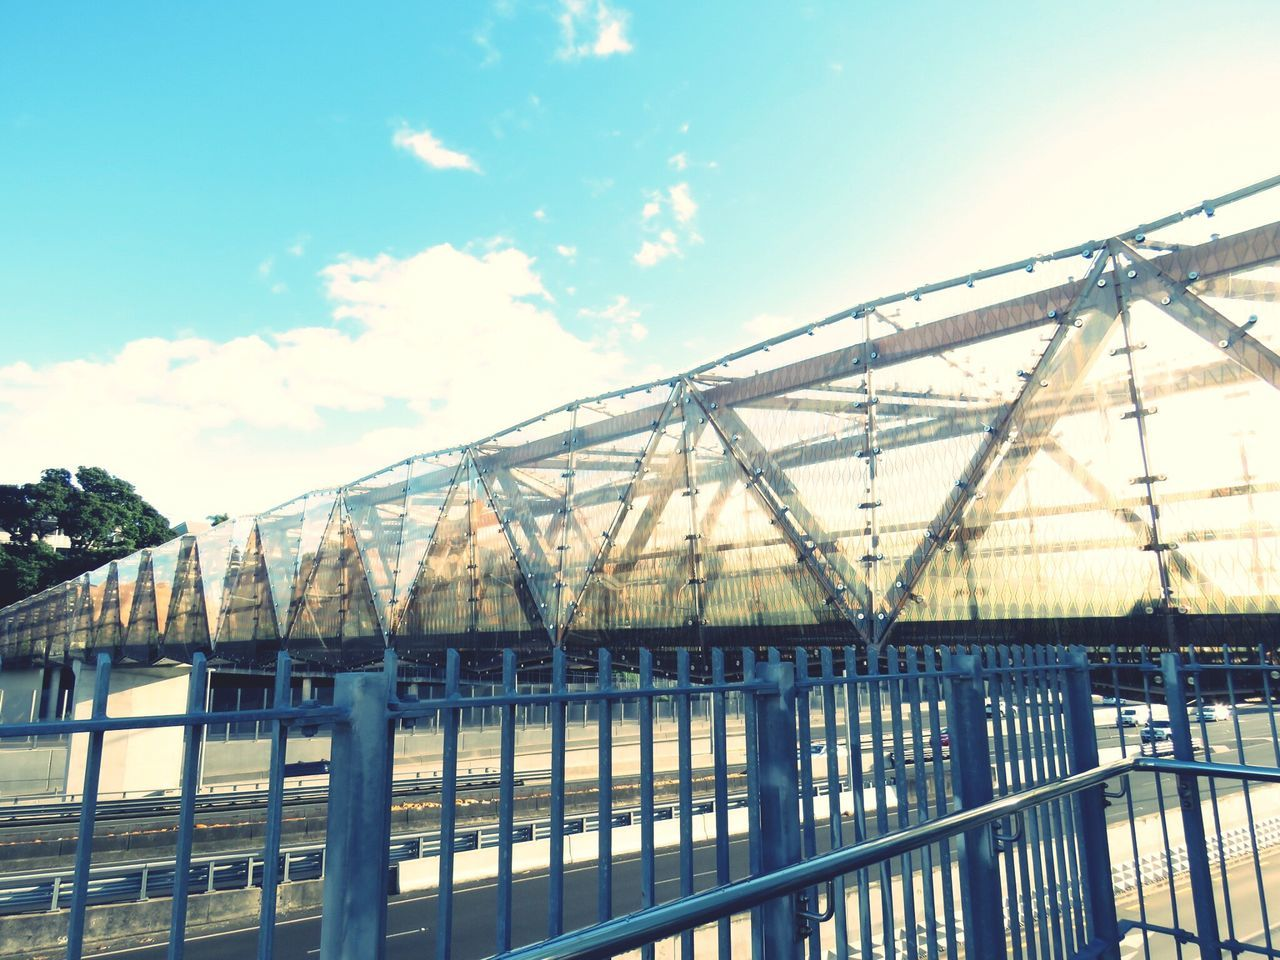 bridge - man made structure, architecture, built structure, connection, sky, transportation, low angle view, no people, day, bridge, outdoors, place, city, nature